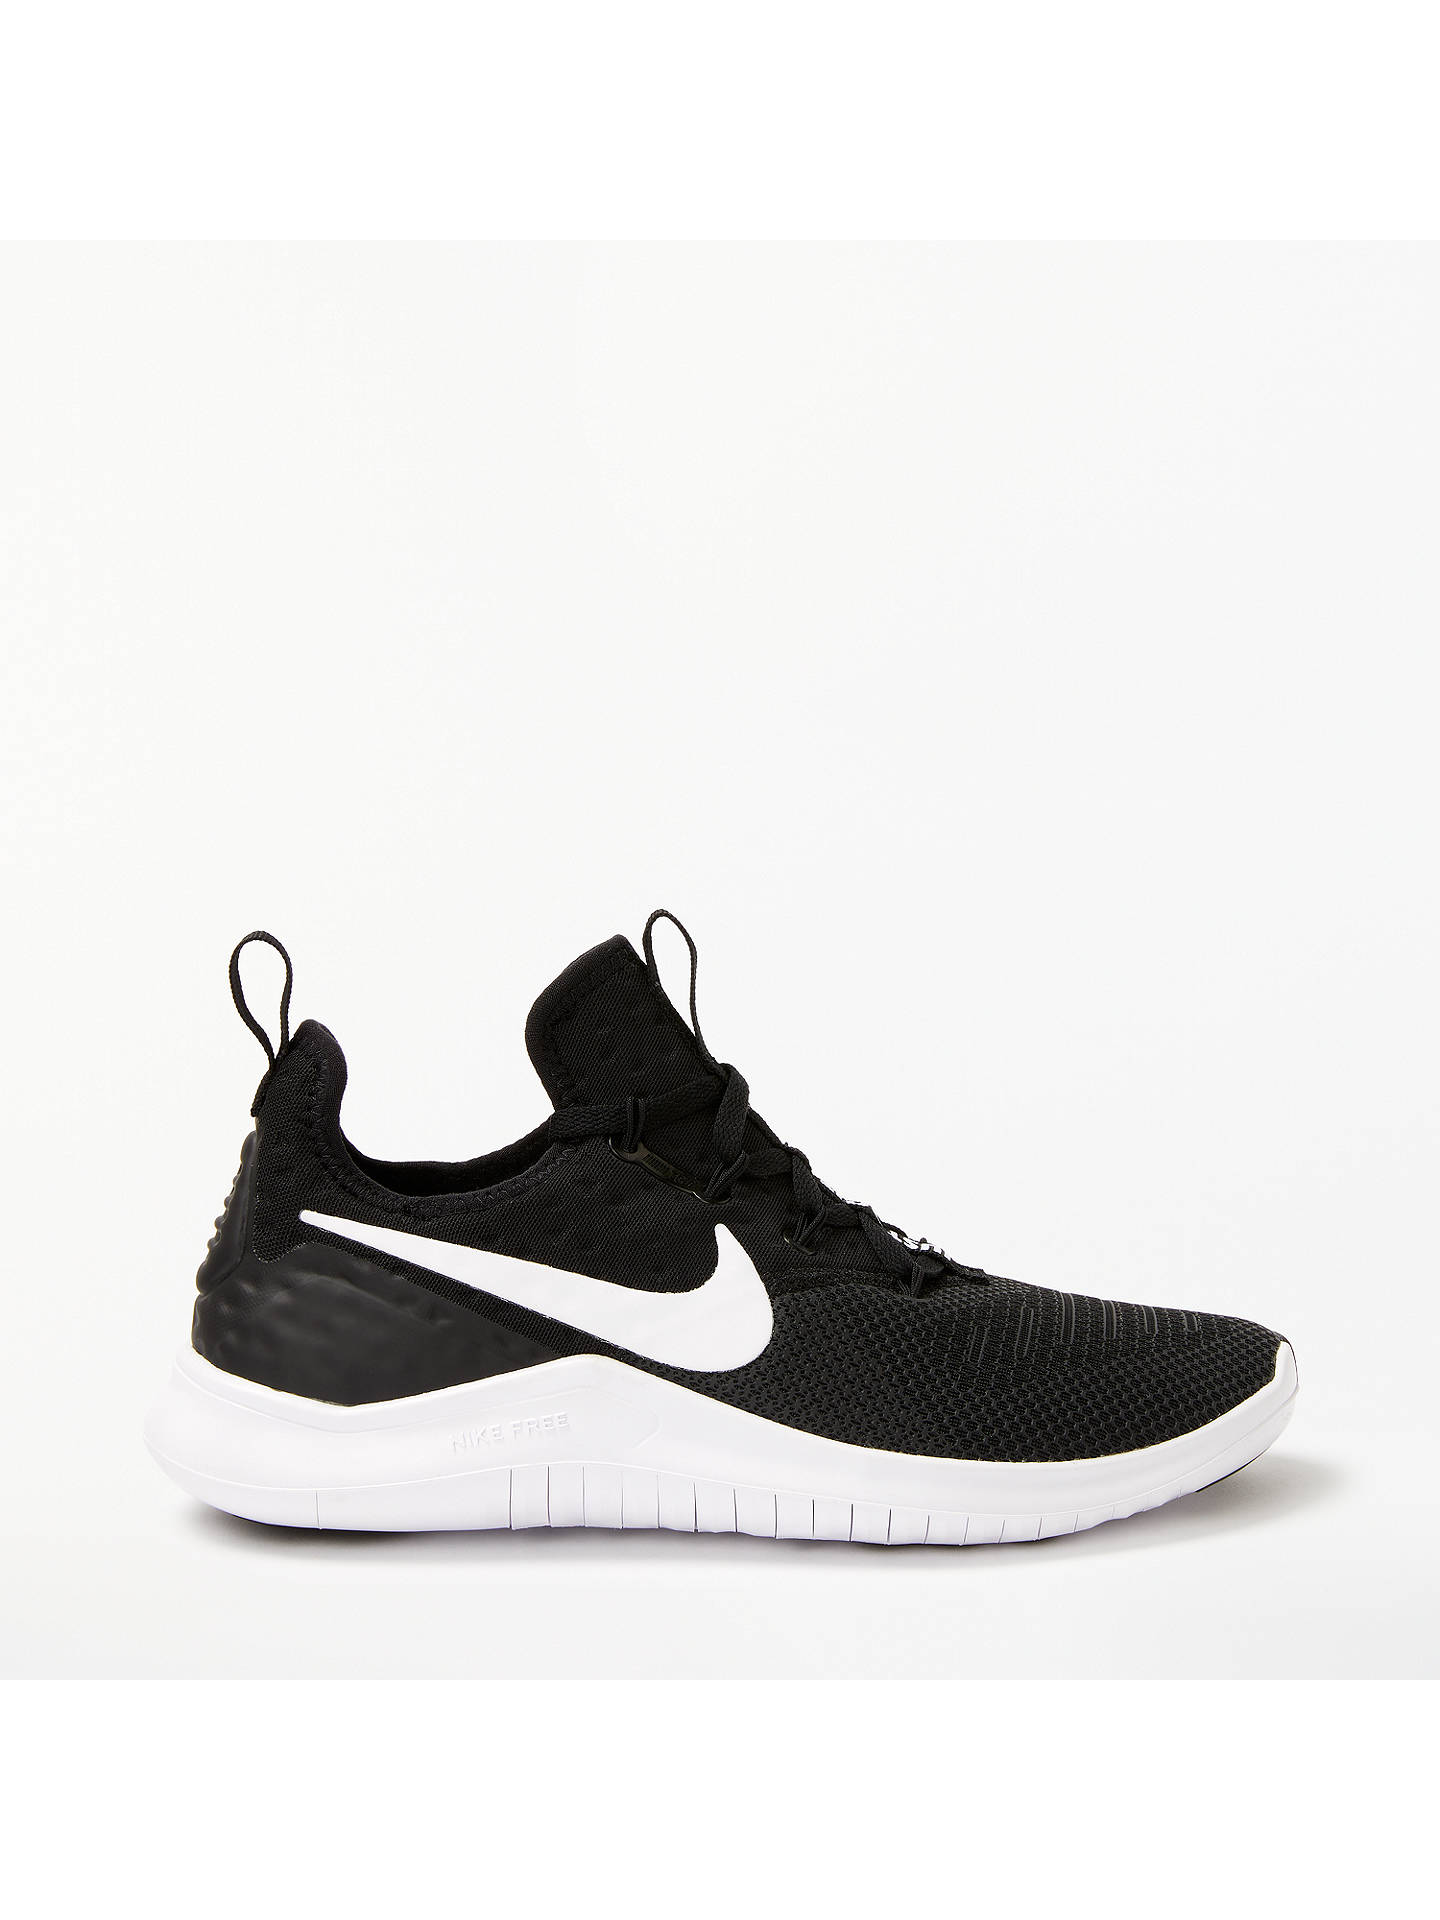 innovative design 6c44c fda10 Buy Nike Free TR 8 Women s Training Shoes, Black White, 4 Online at ...